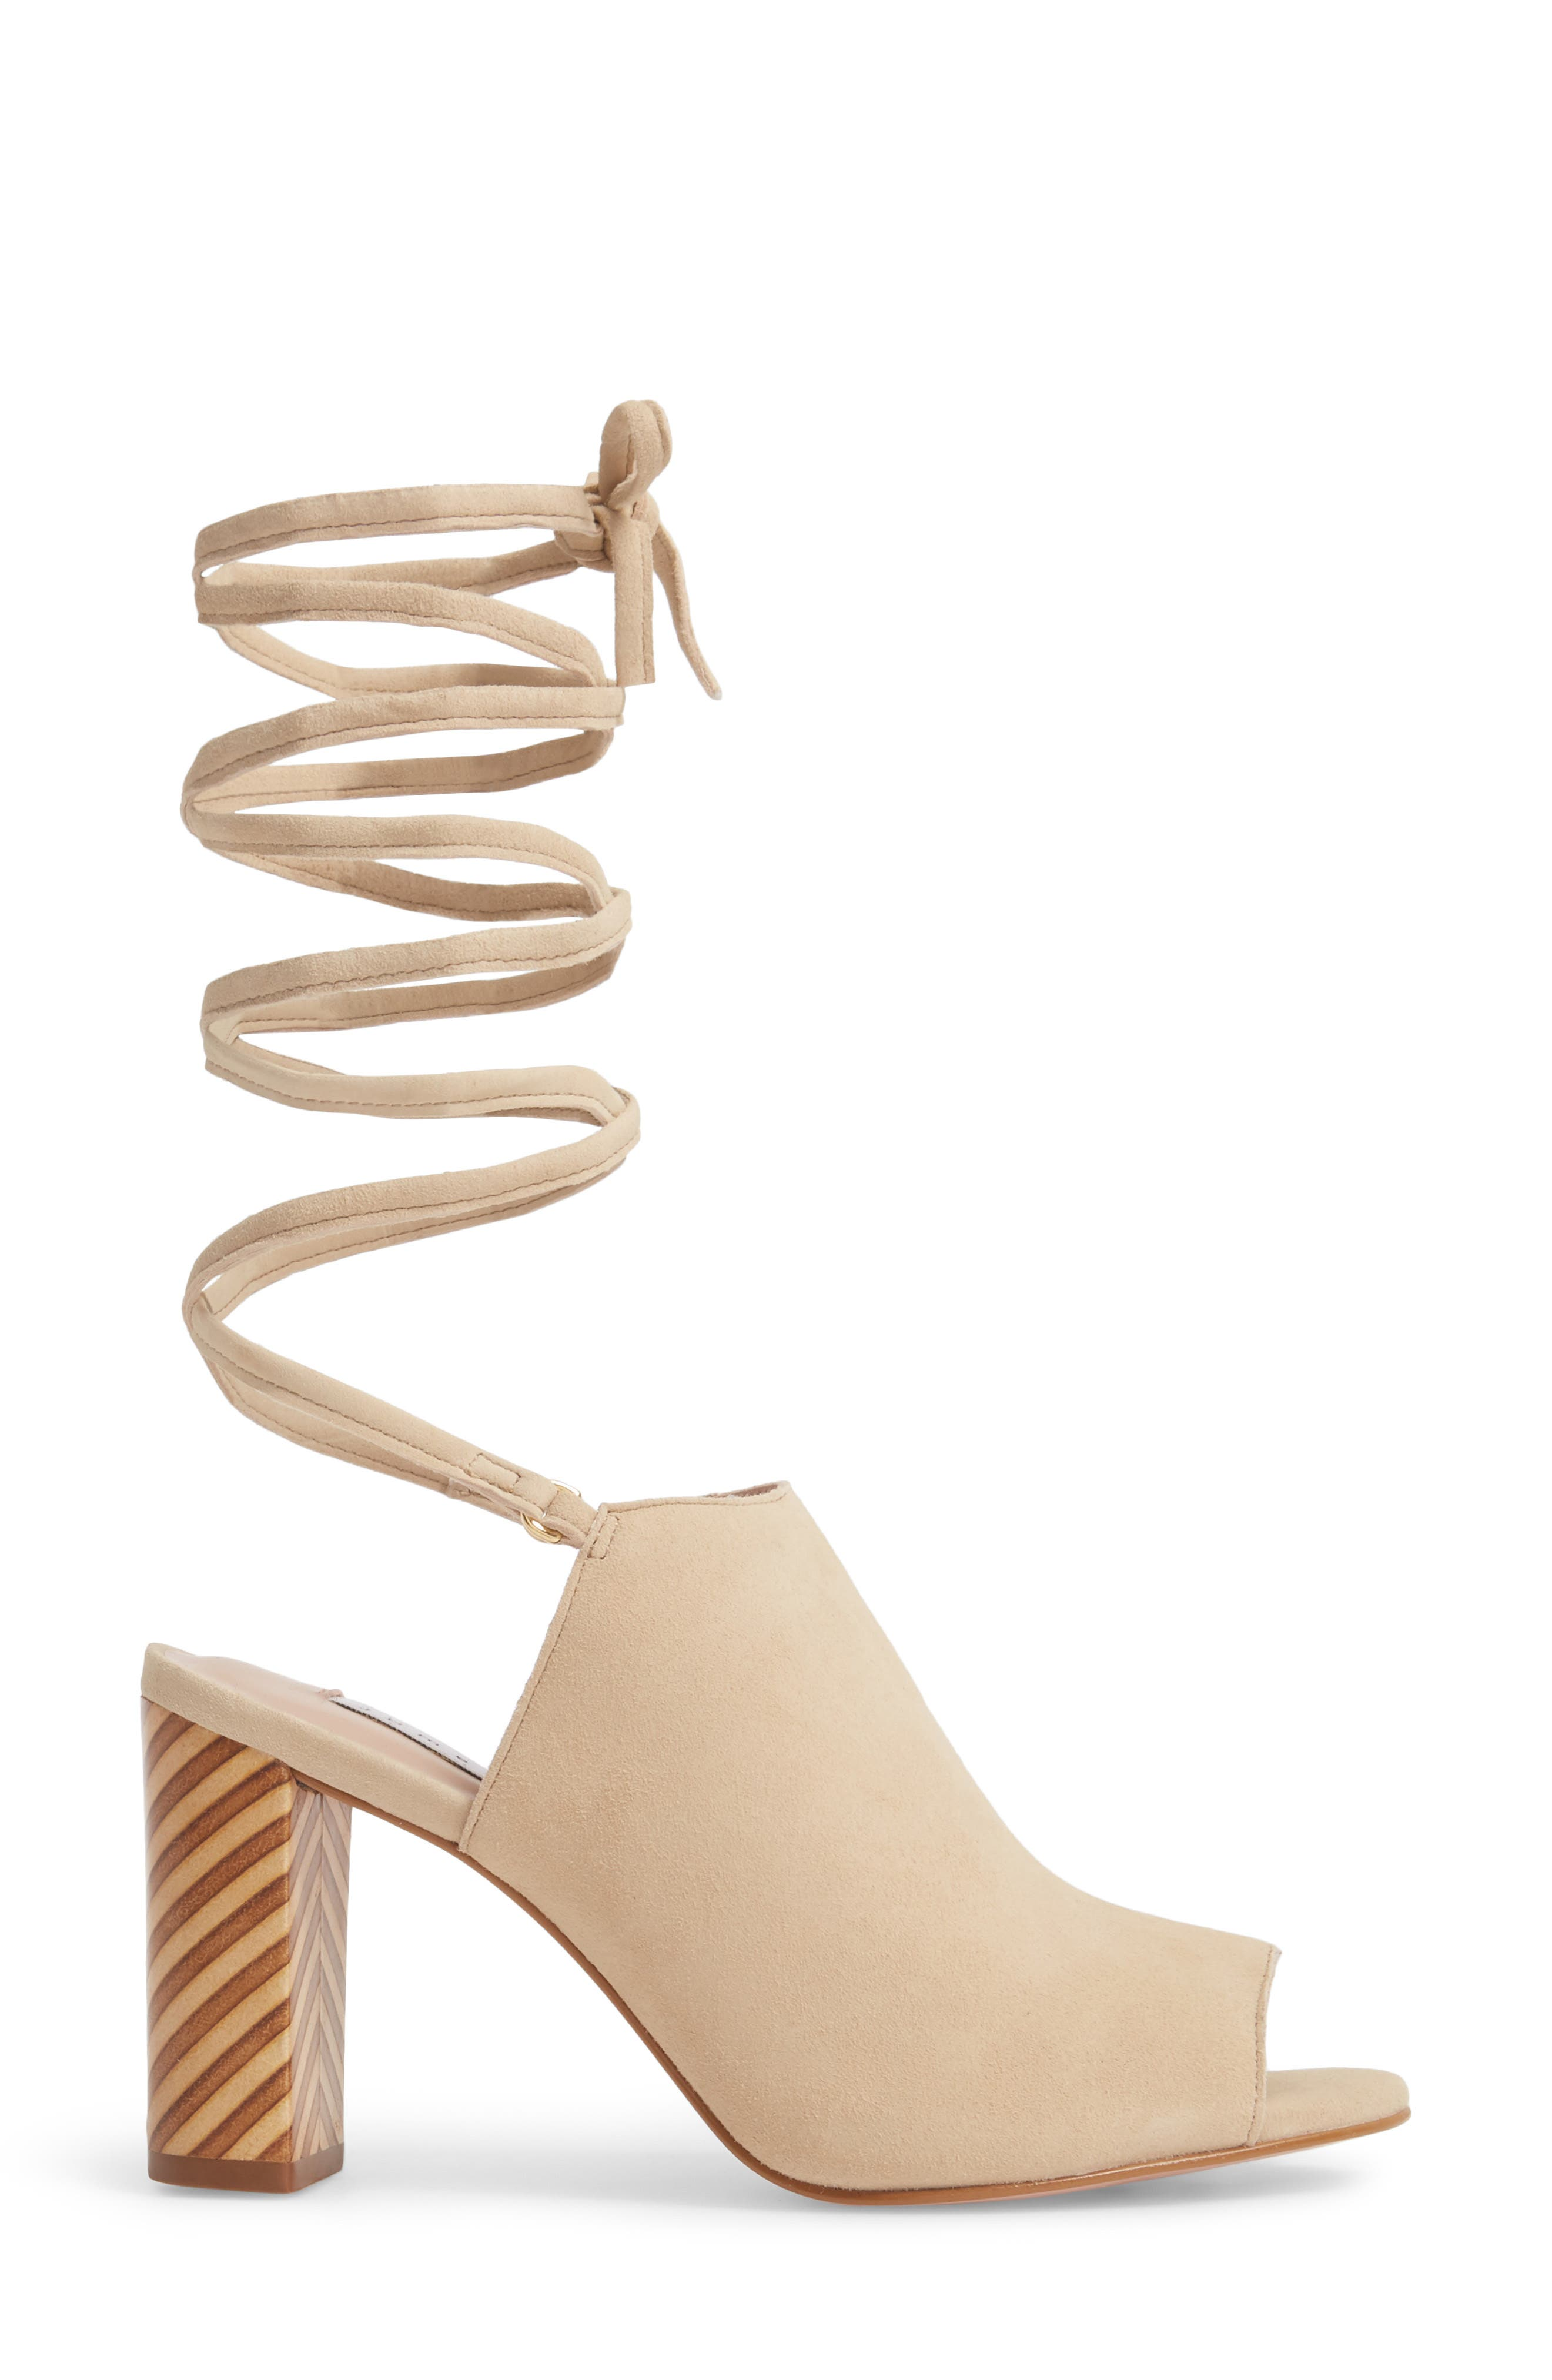 Allegra Ankle Wrap Sandal,                             Alternate thumbnail 3, color,                             Sand Suede